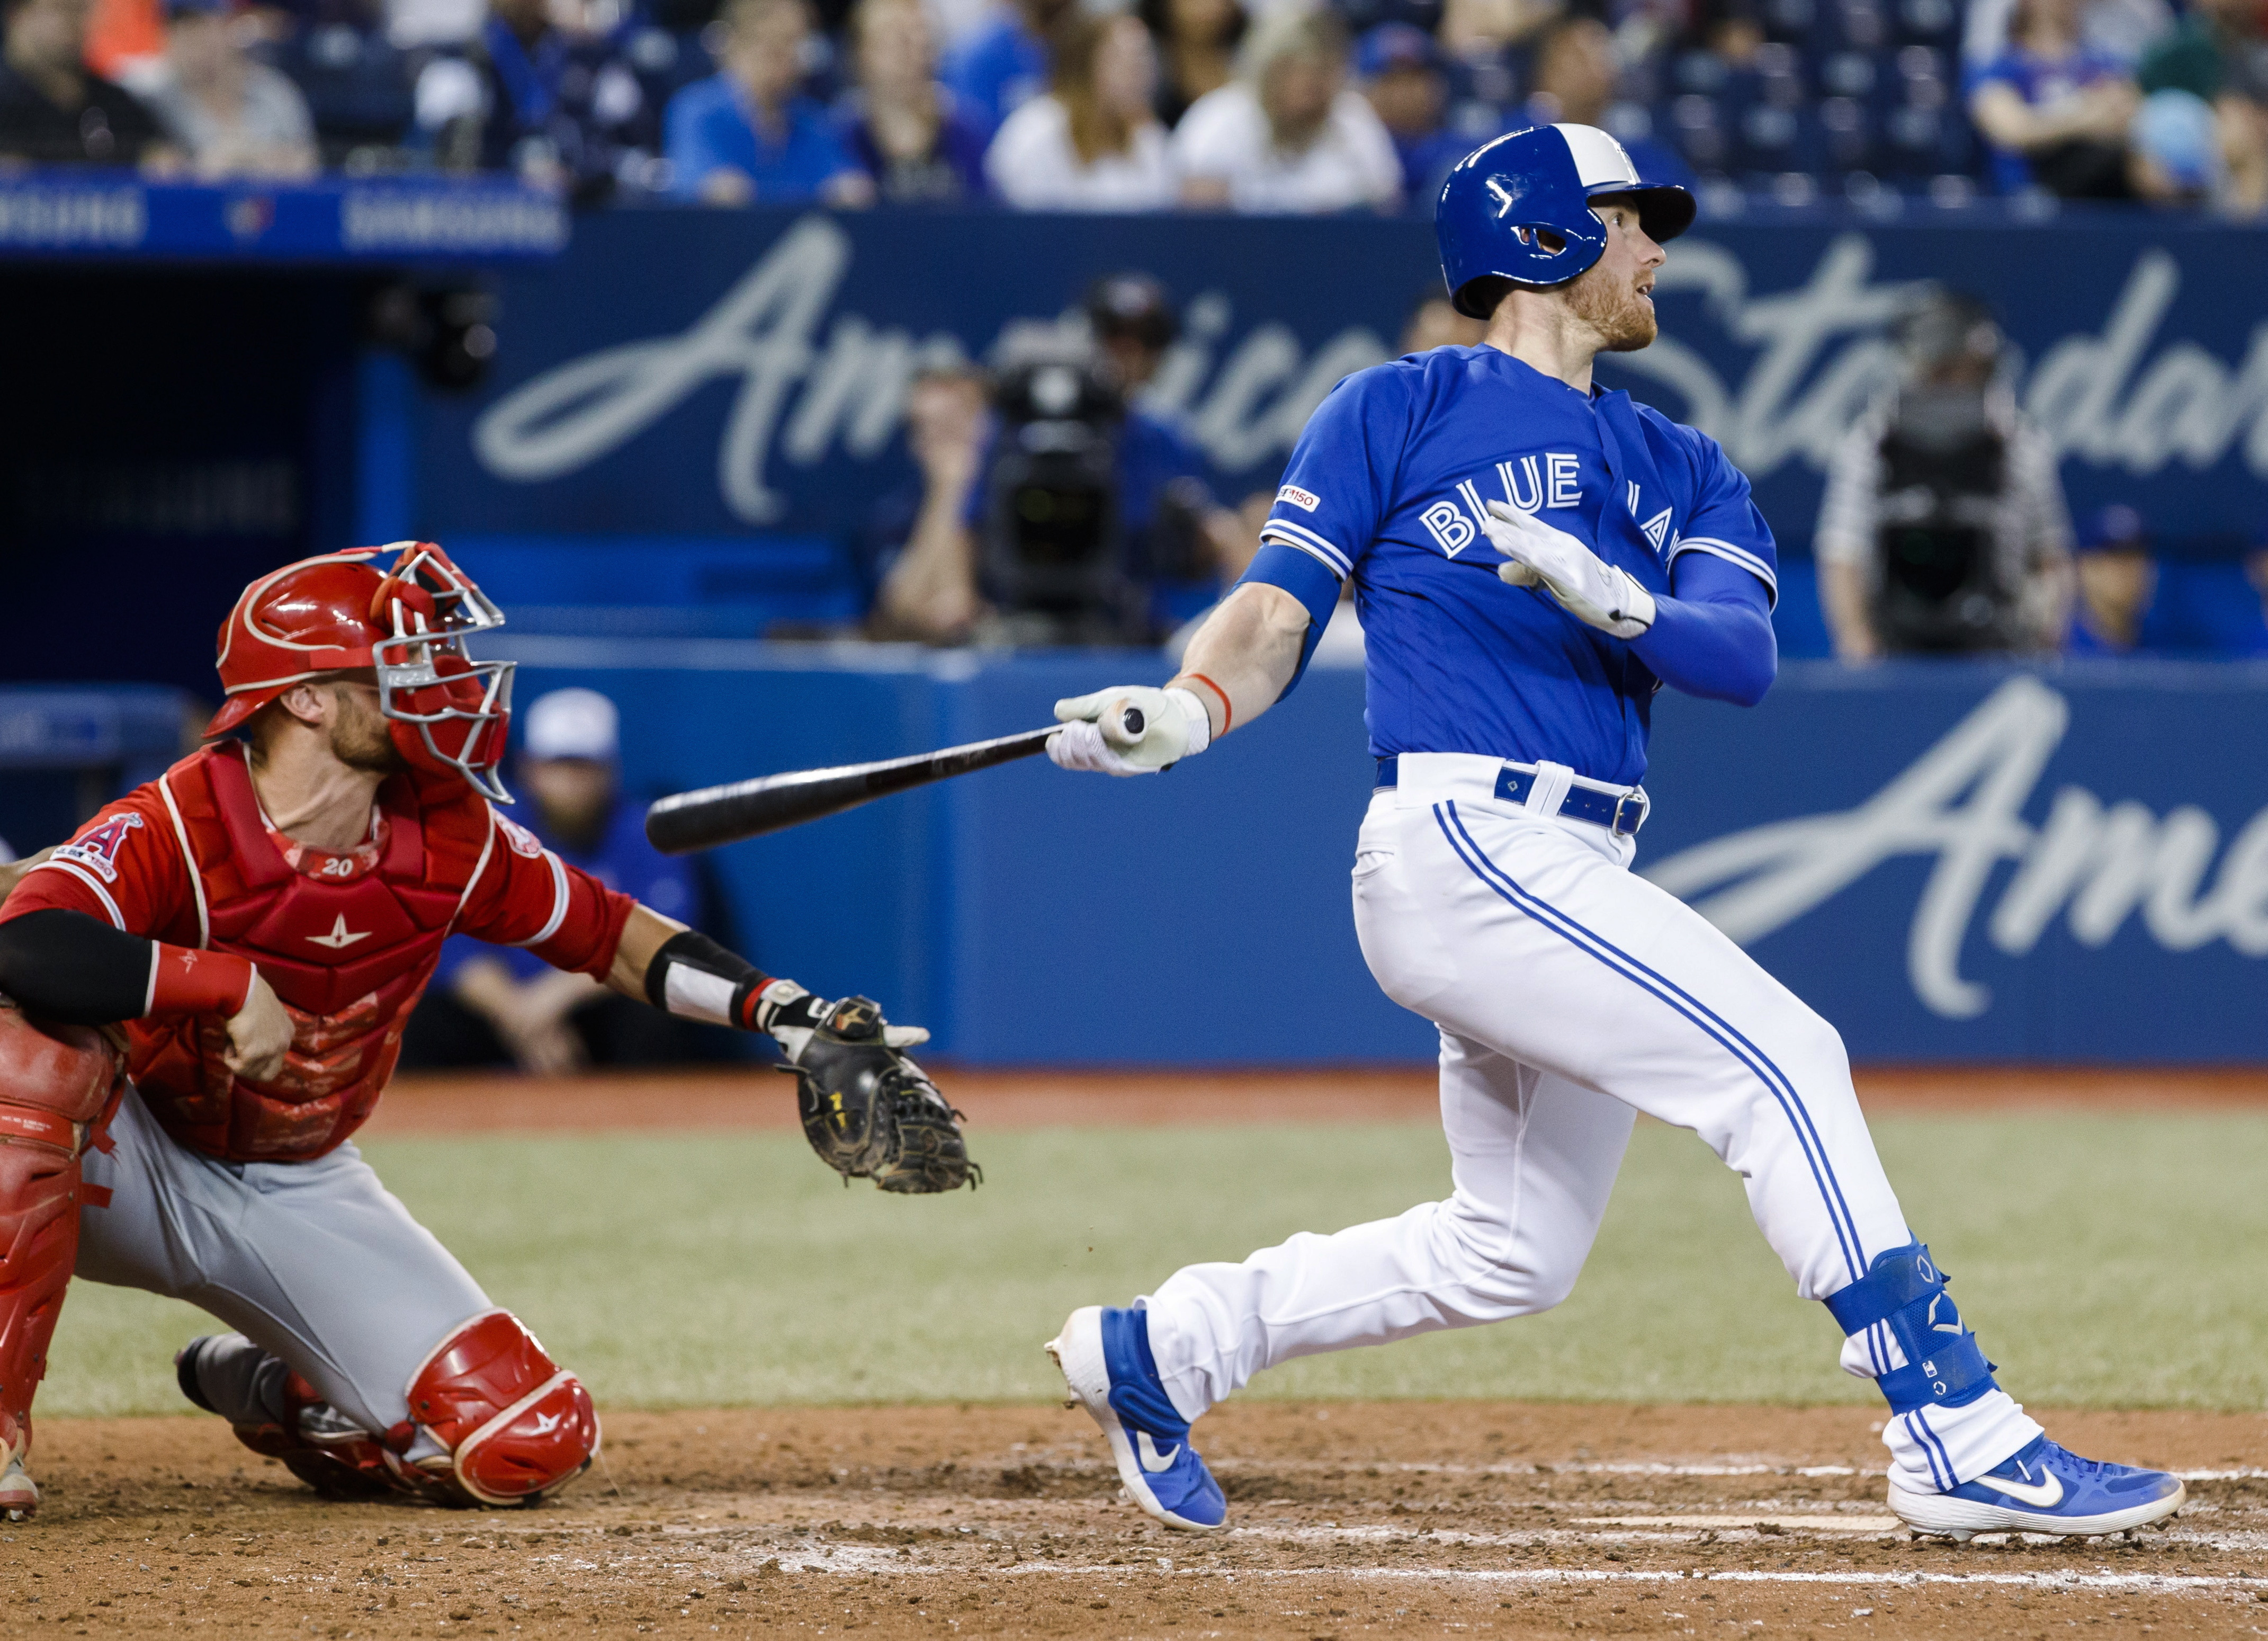 McKinney's HR in 10th gives Blue Jays 7-5 win over Angels